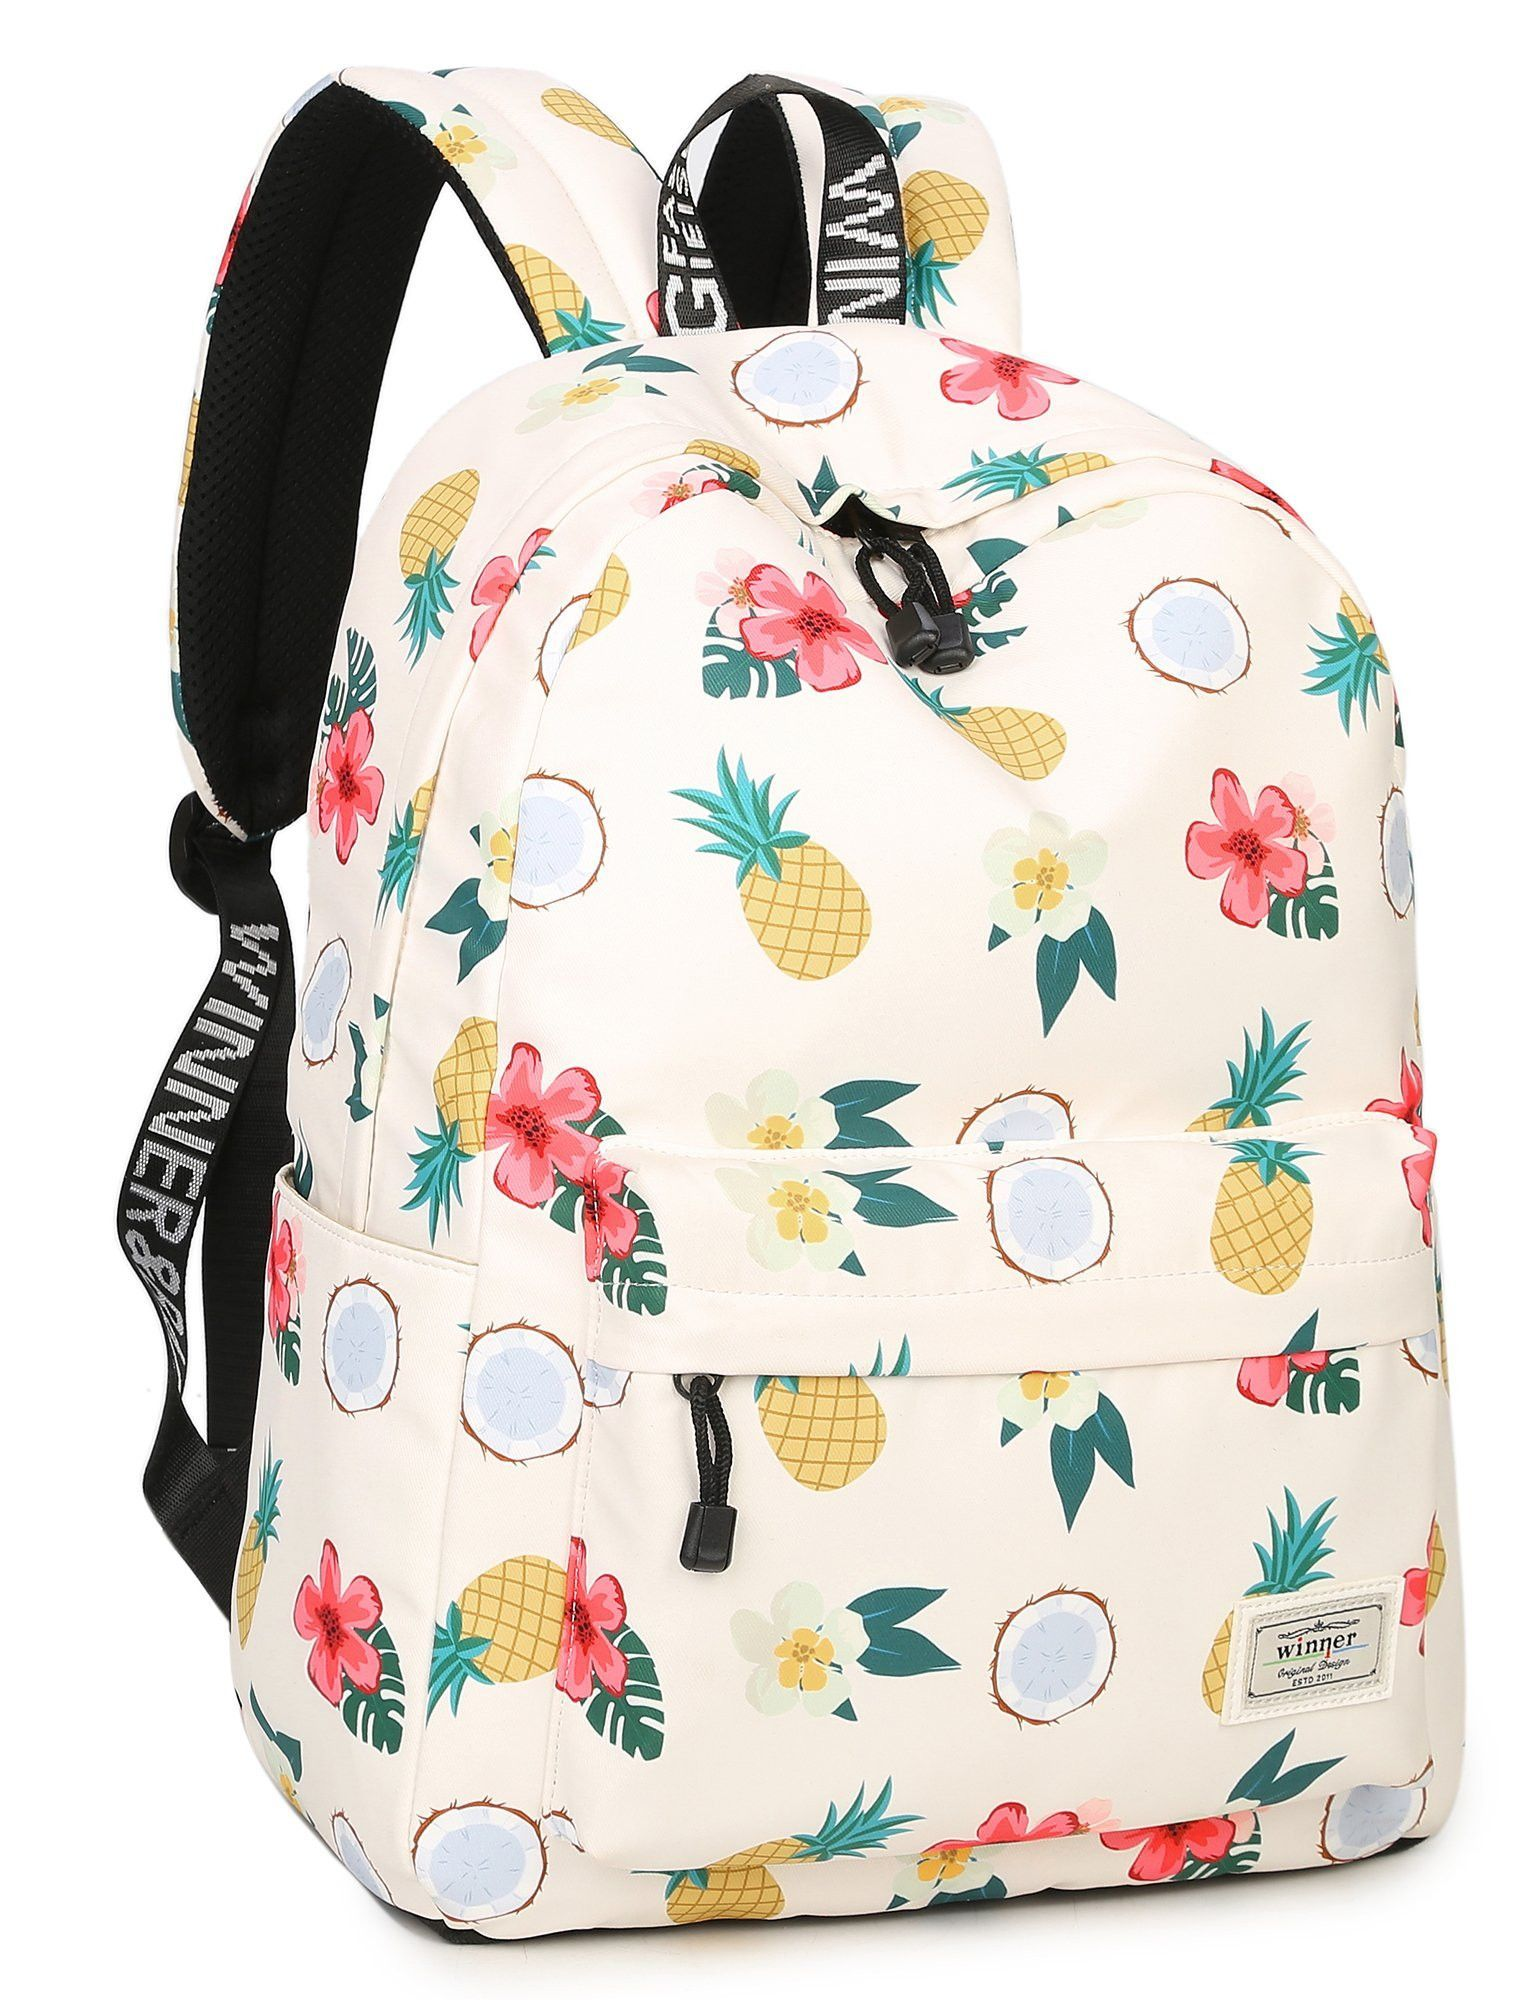 f73dec9fdc3e School Bookbags for Girls Floral Pineapple Printed Backpack College Bags  Women Daypack by Leaper